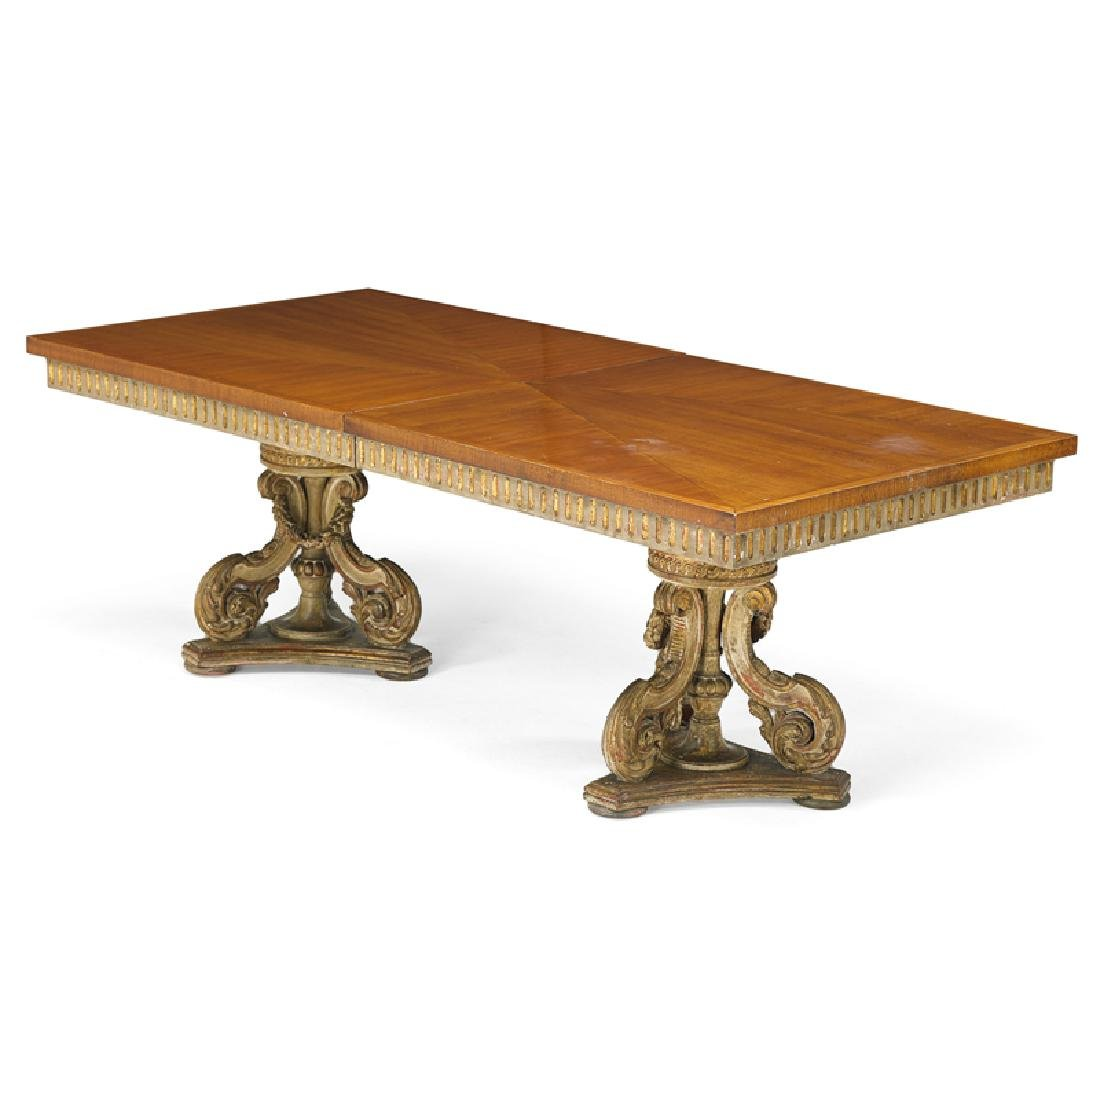 NEOCLASSICAL STYLE PARCEL GILT WALNUT DINING TABLE